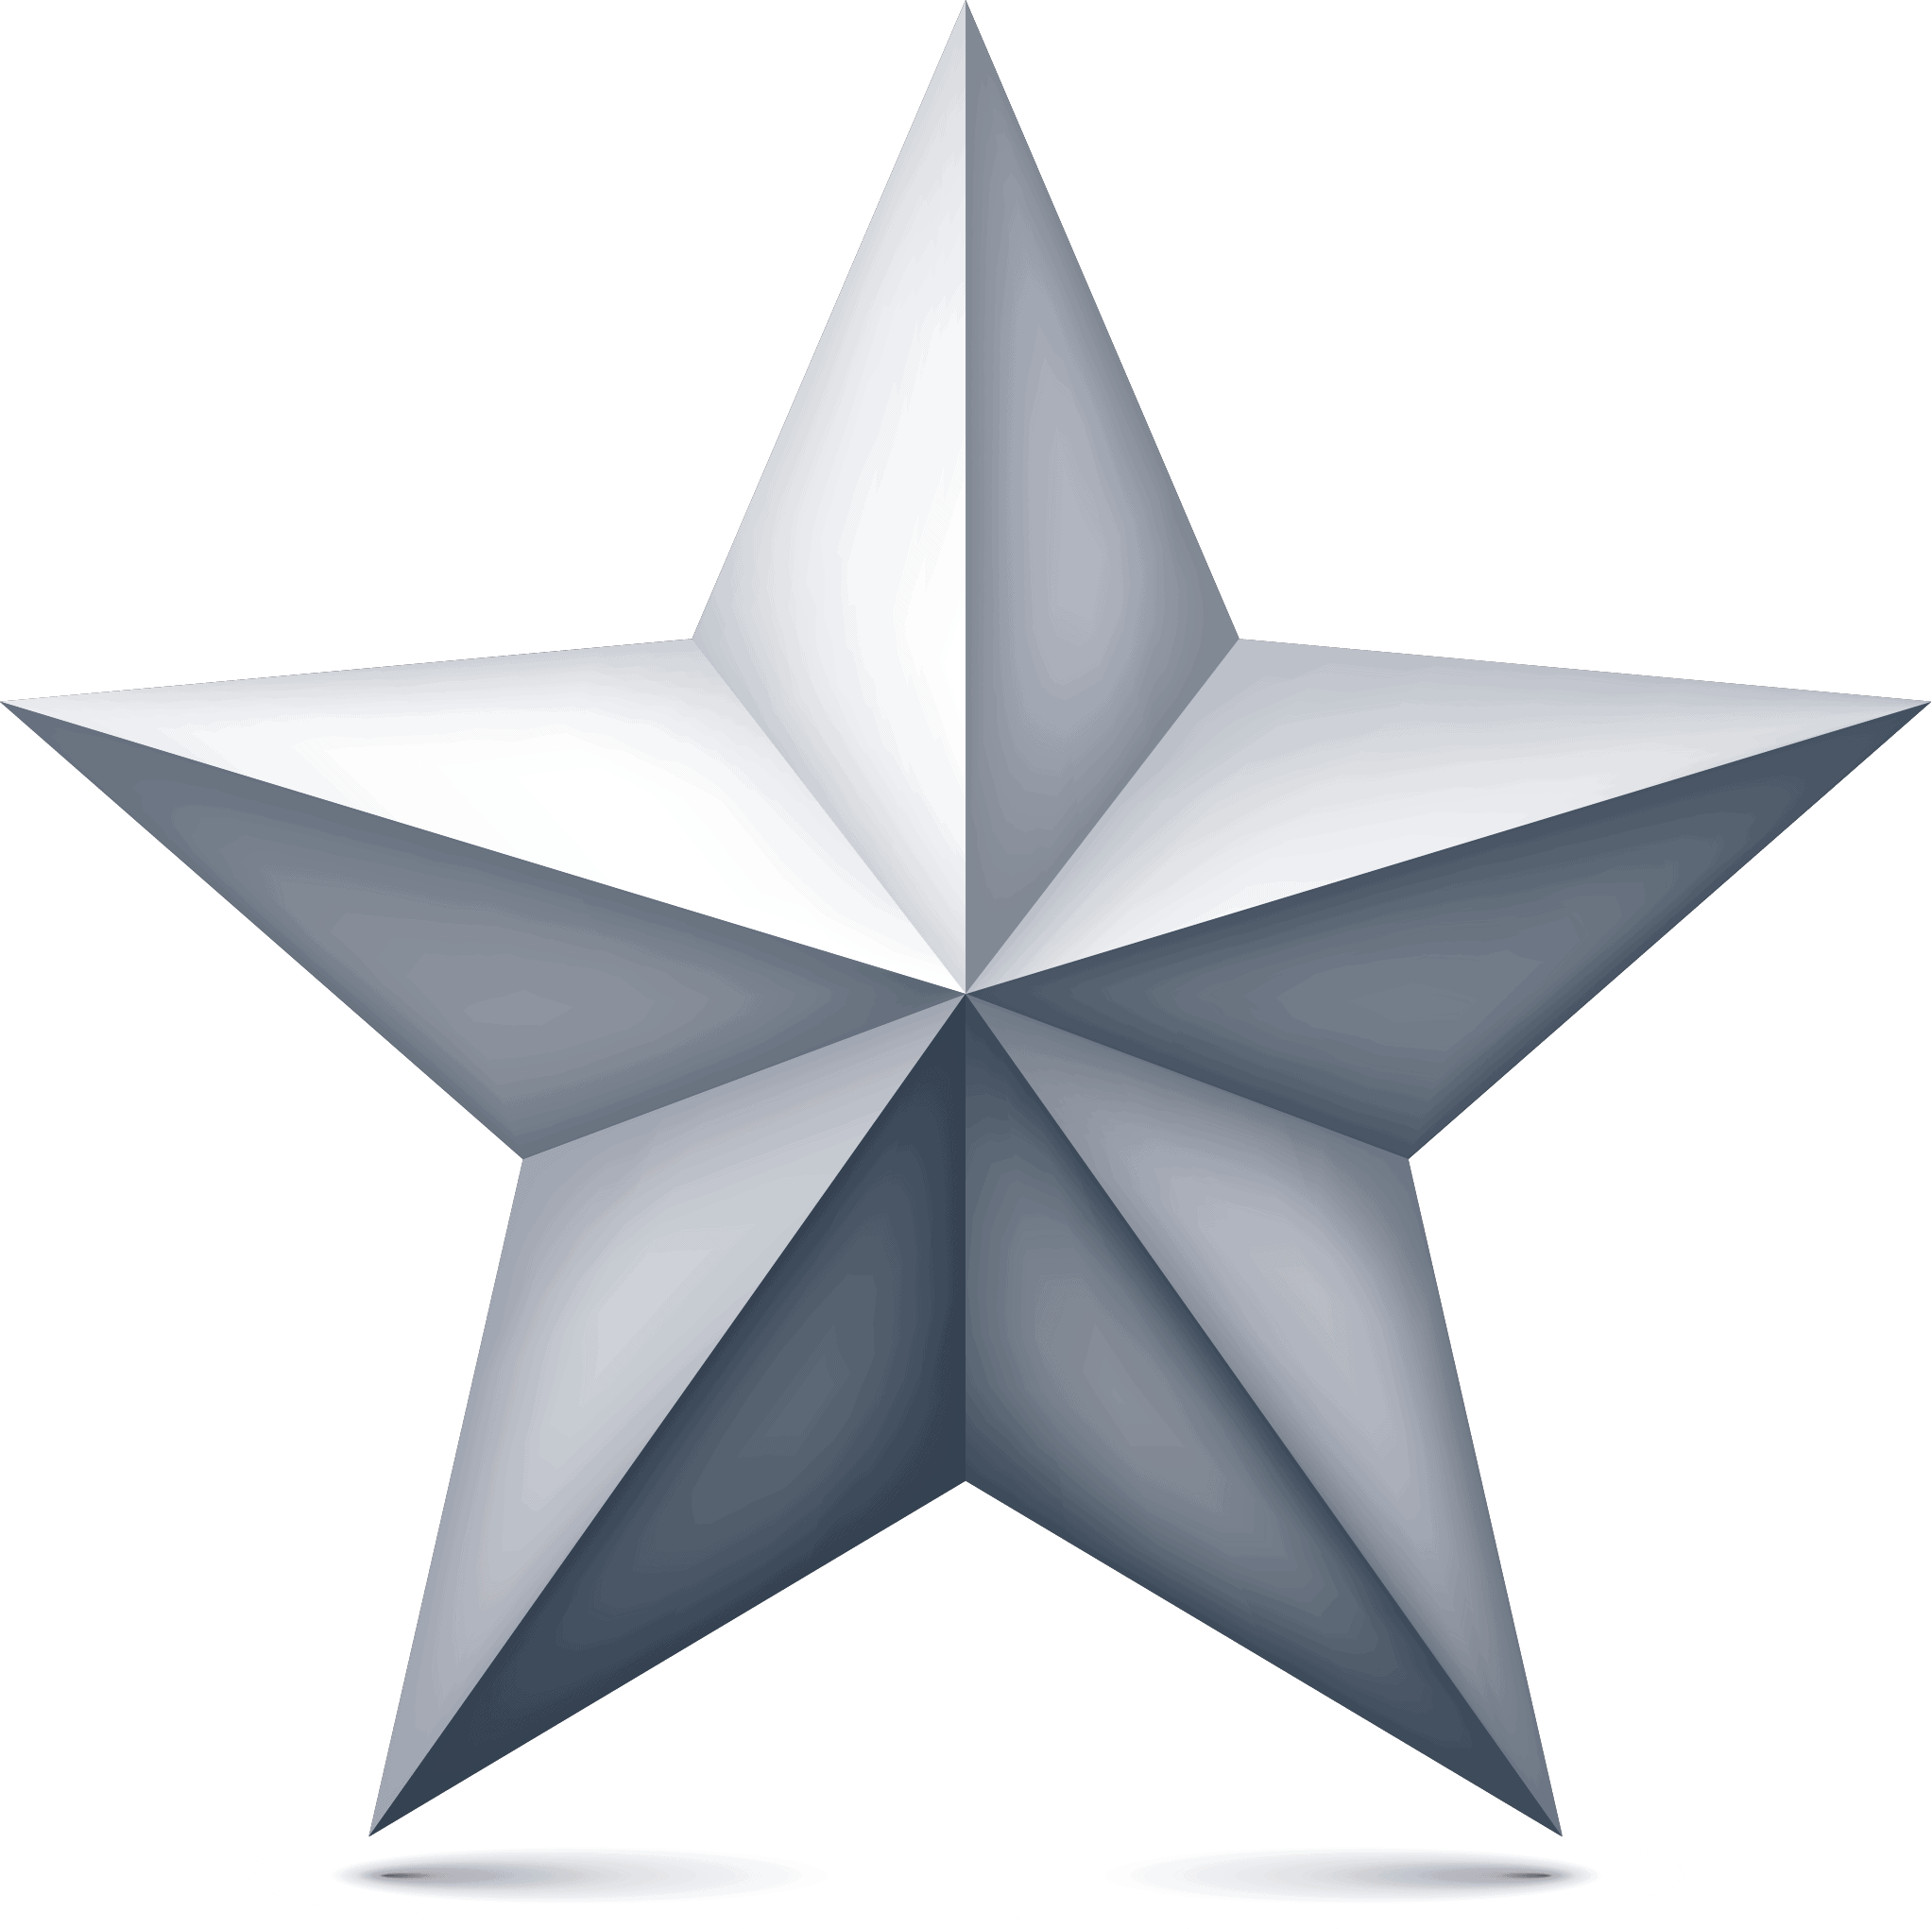 5star-01-2 [Converted]